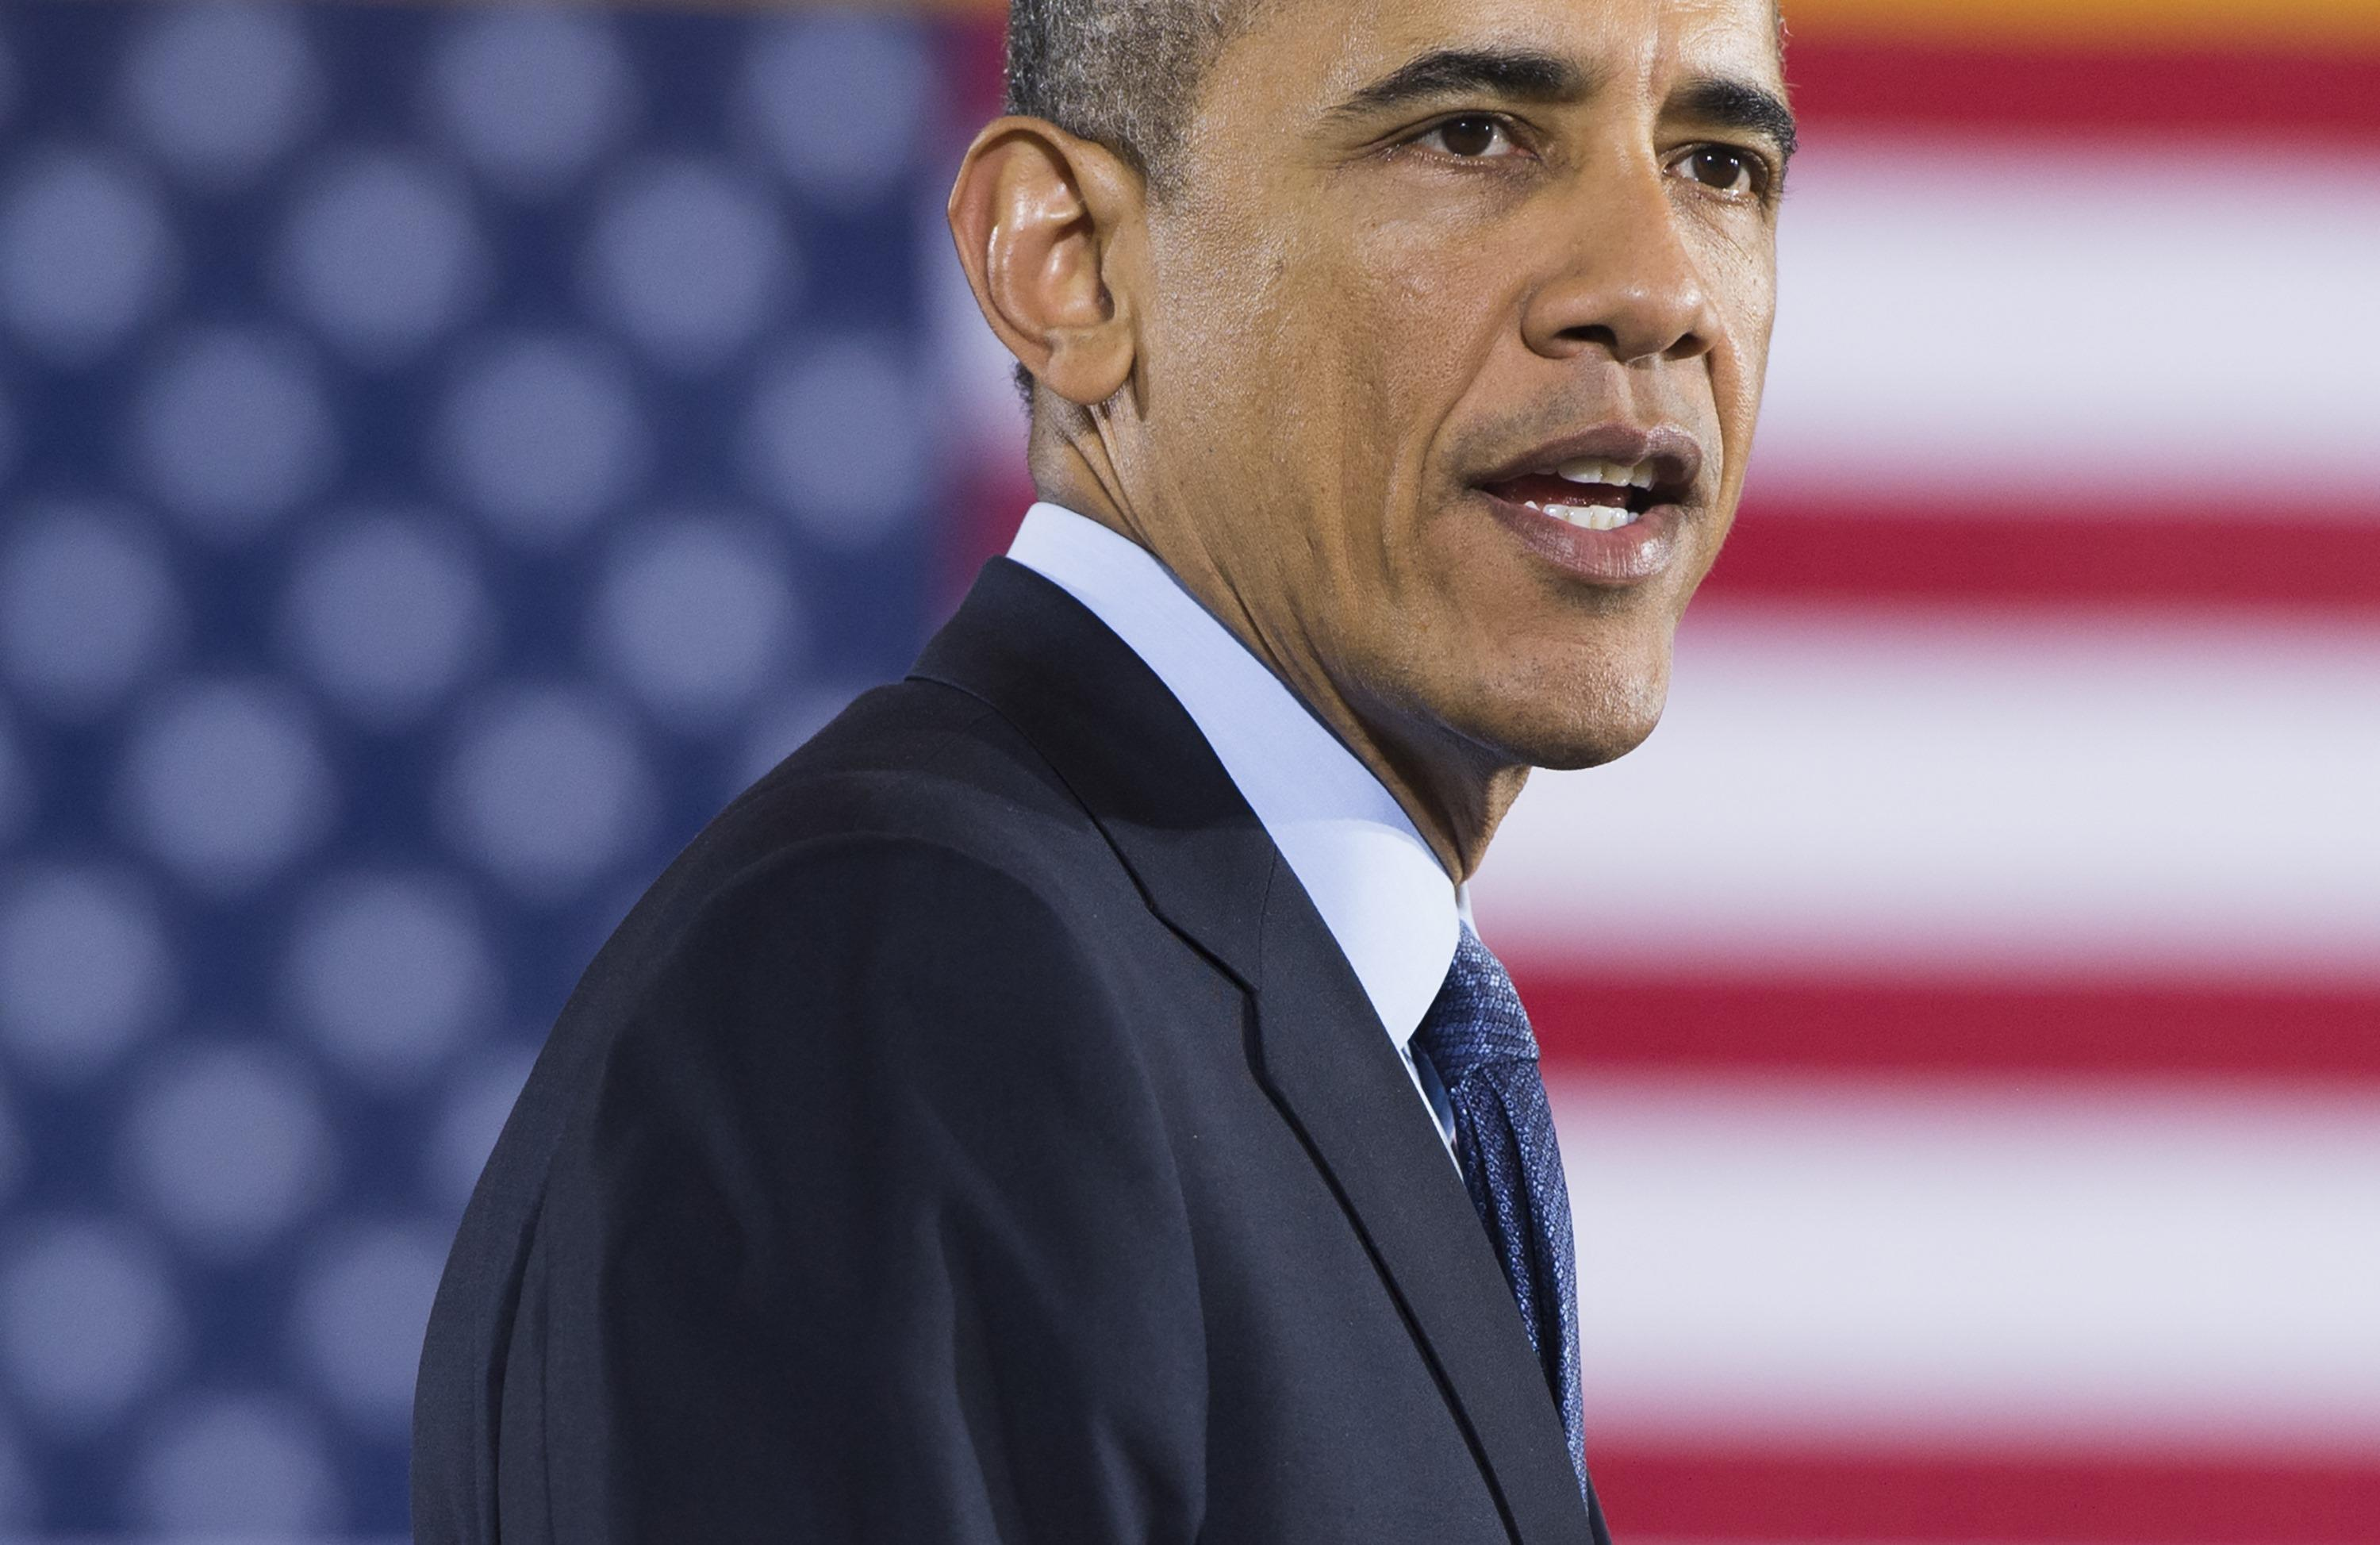 Obama will sign Russia sanctions bill: White House